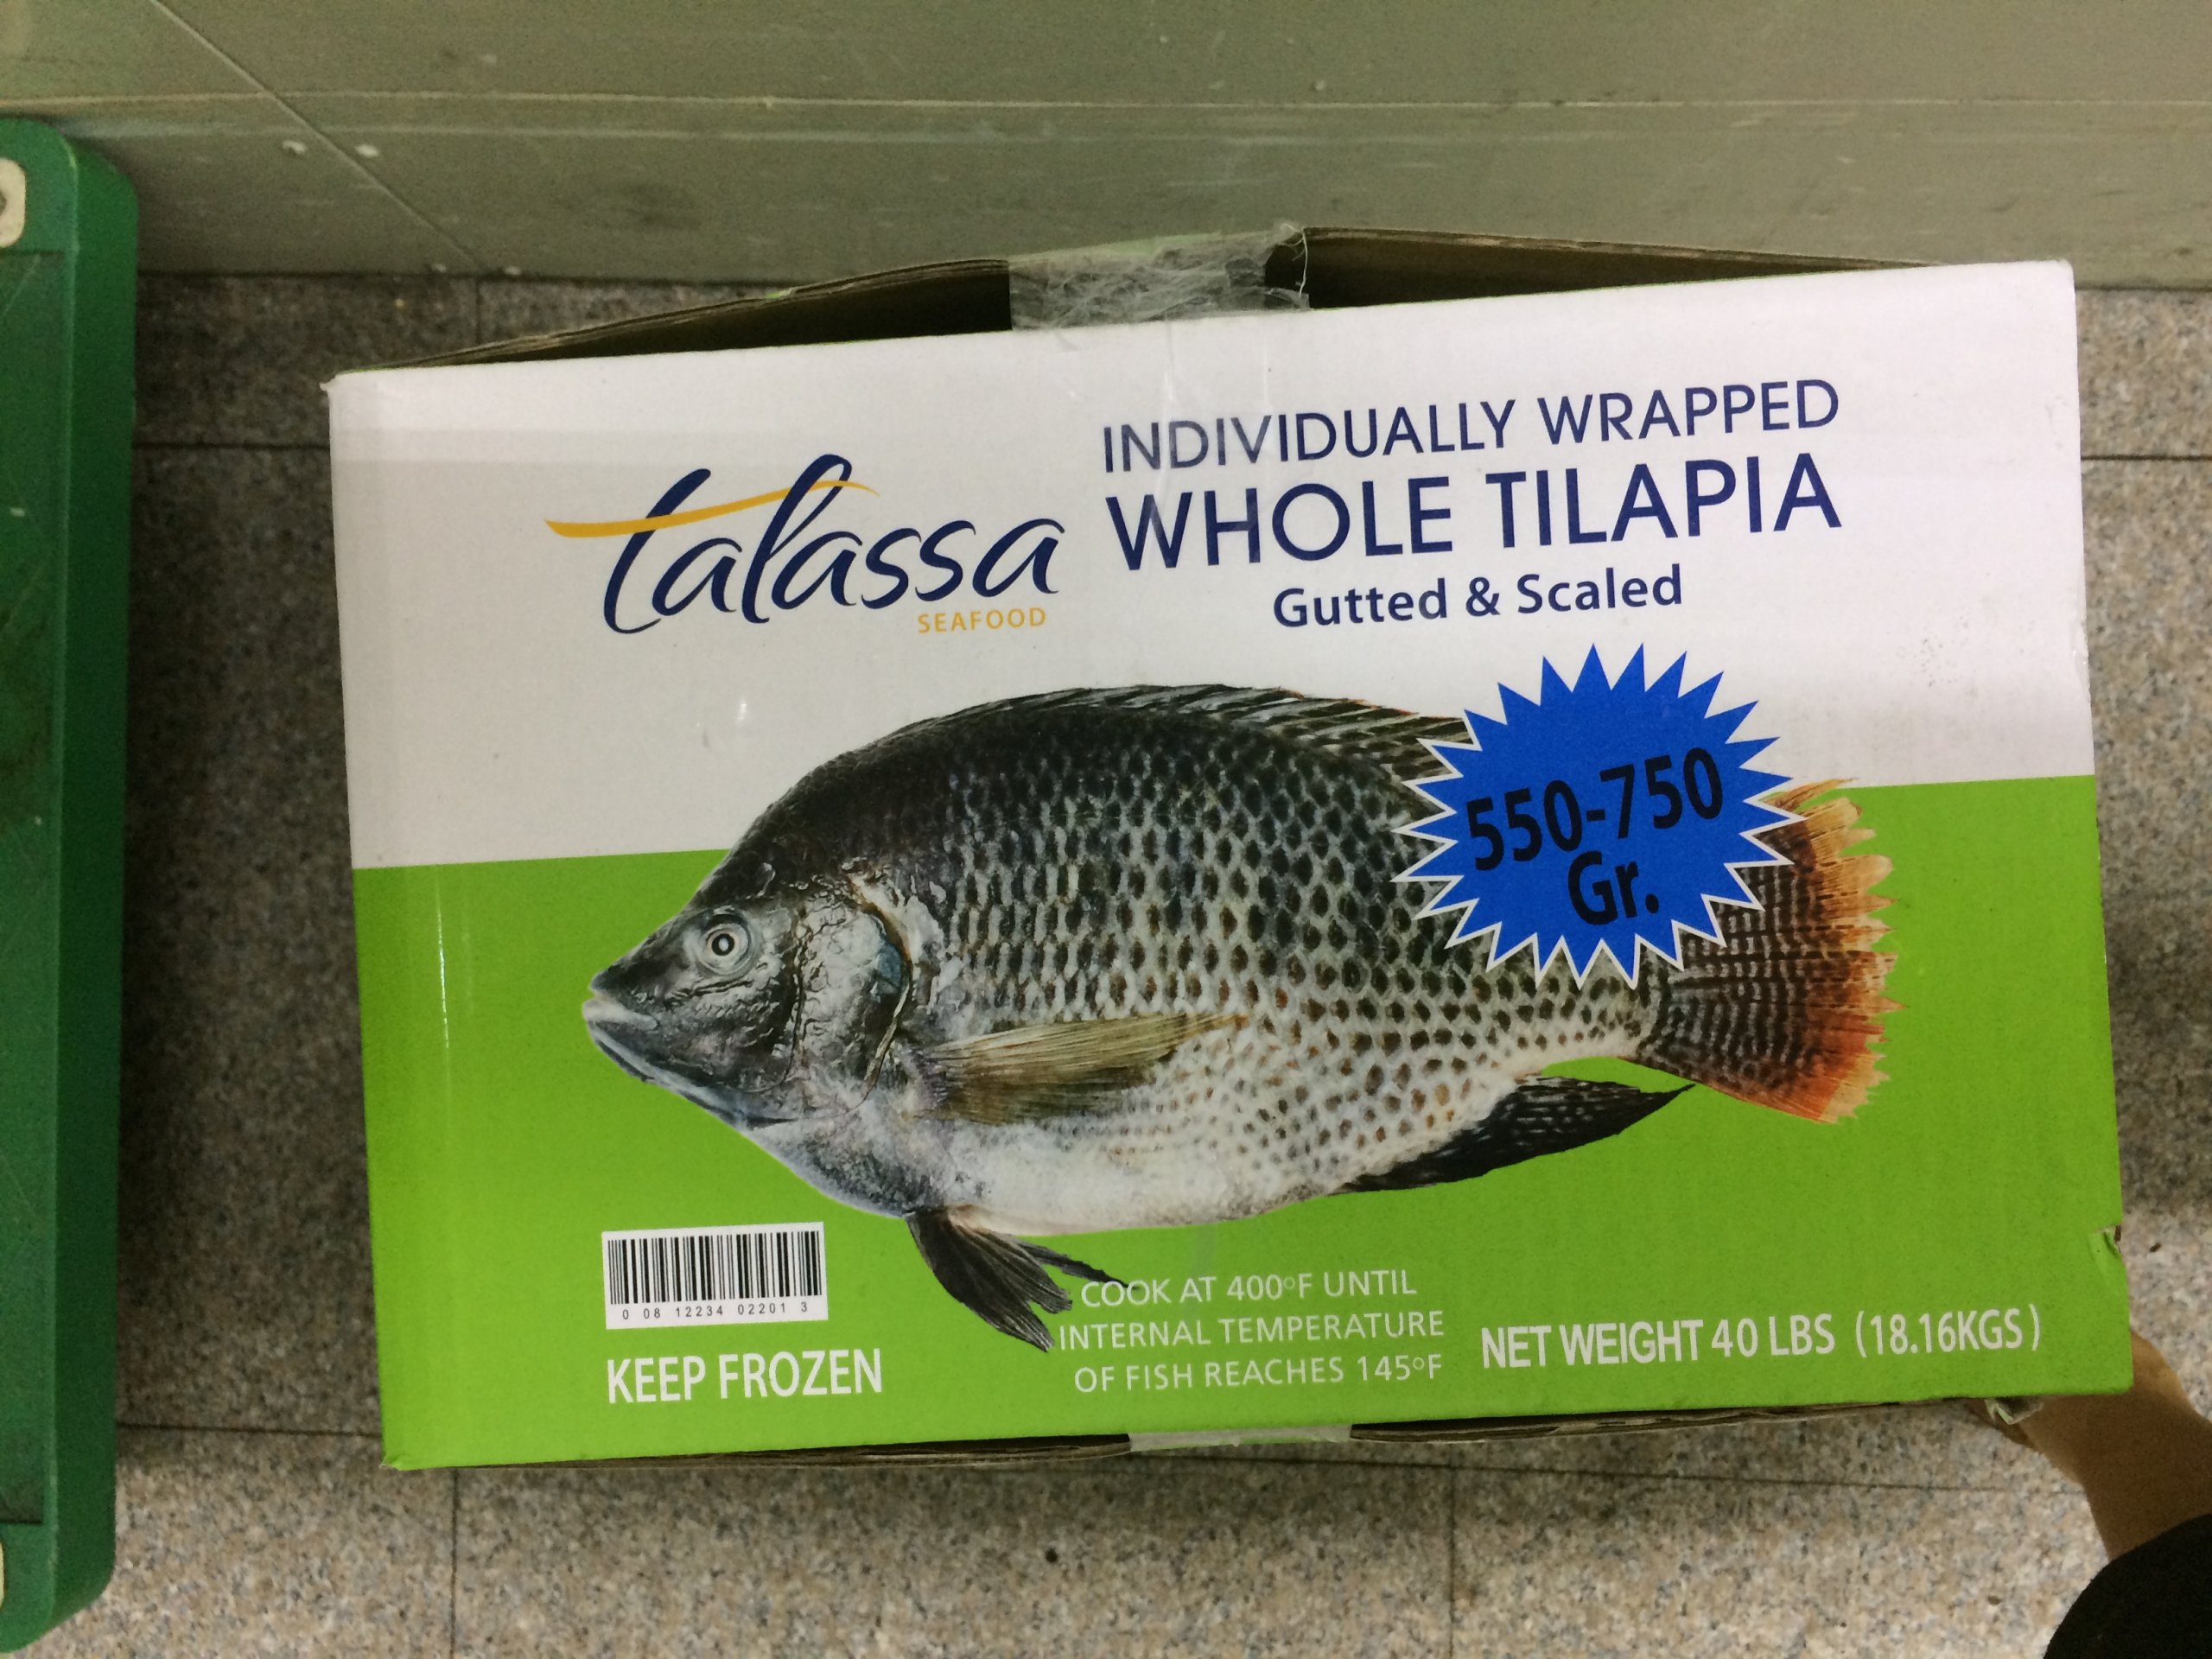 Talassa tilapia image indicating contents on frozen food box.